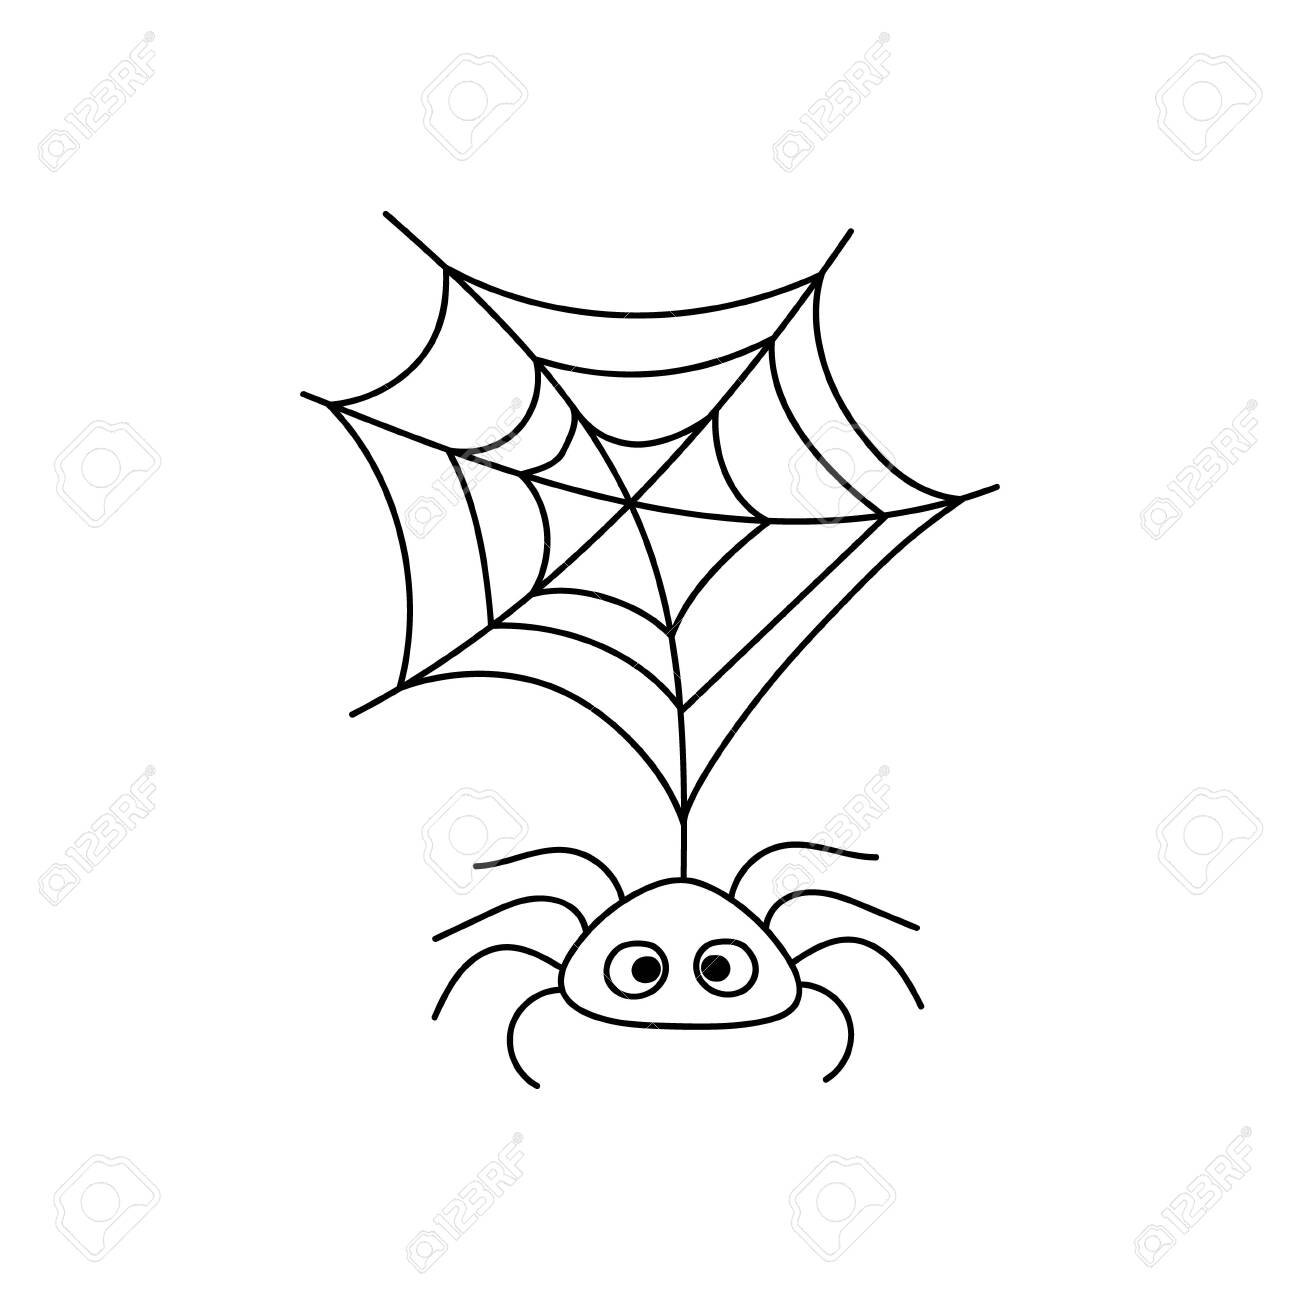 Doodle spider icon isolated on white. Halloween symbol. Sketch vector stock illustration. EPS 10 - 155235599